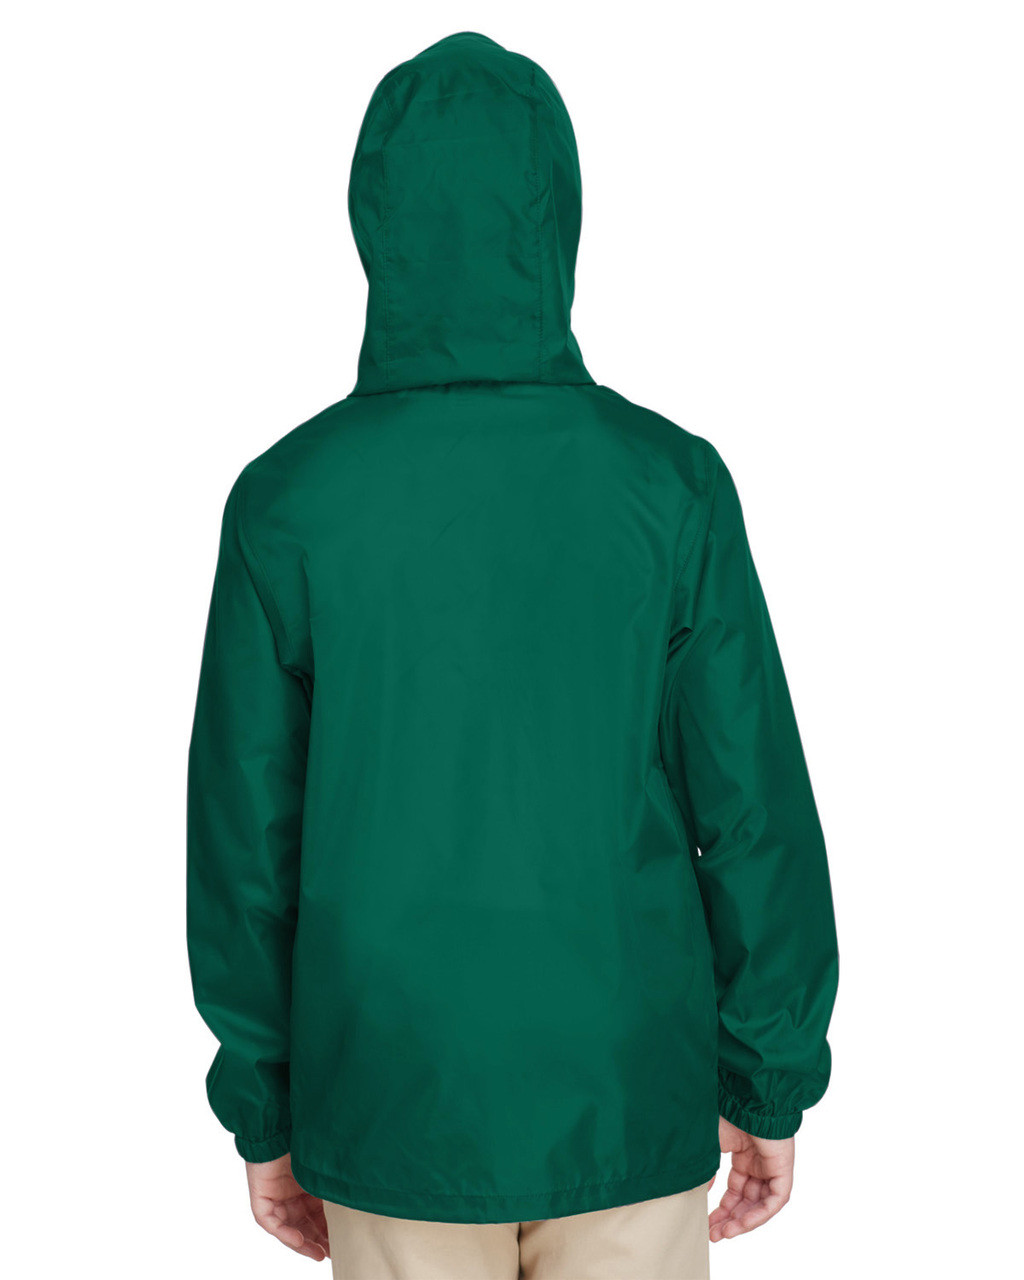 Sport Forest, Back - TT73Y Team 365 Youth Zone Protect Lightweight Jacket  | BlankClothing.ca